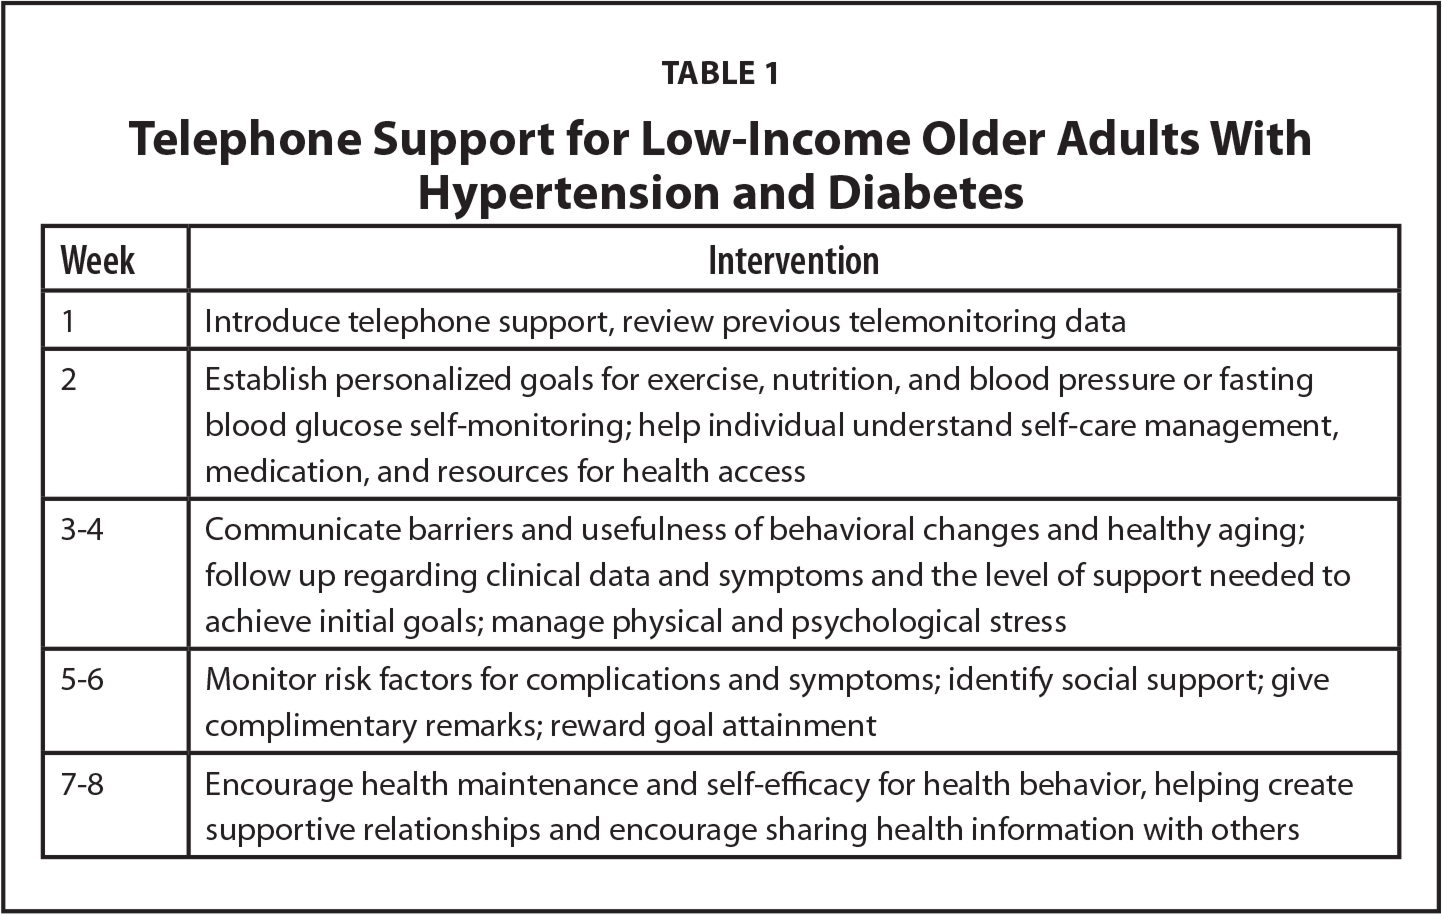 Telephone Support and Telemonitoring for Low-Income Older Adults